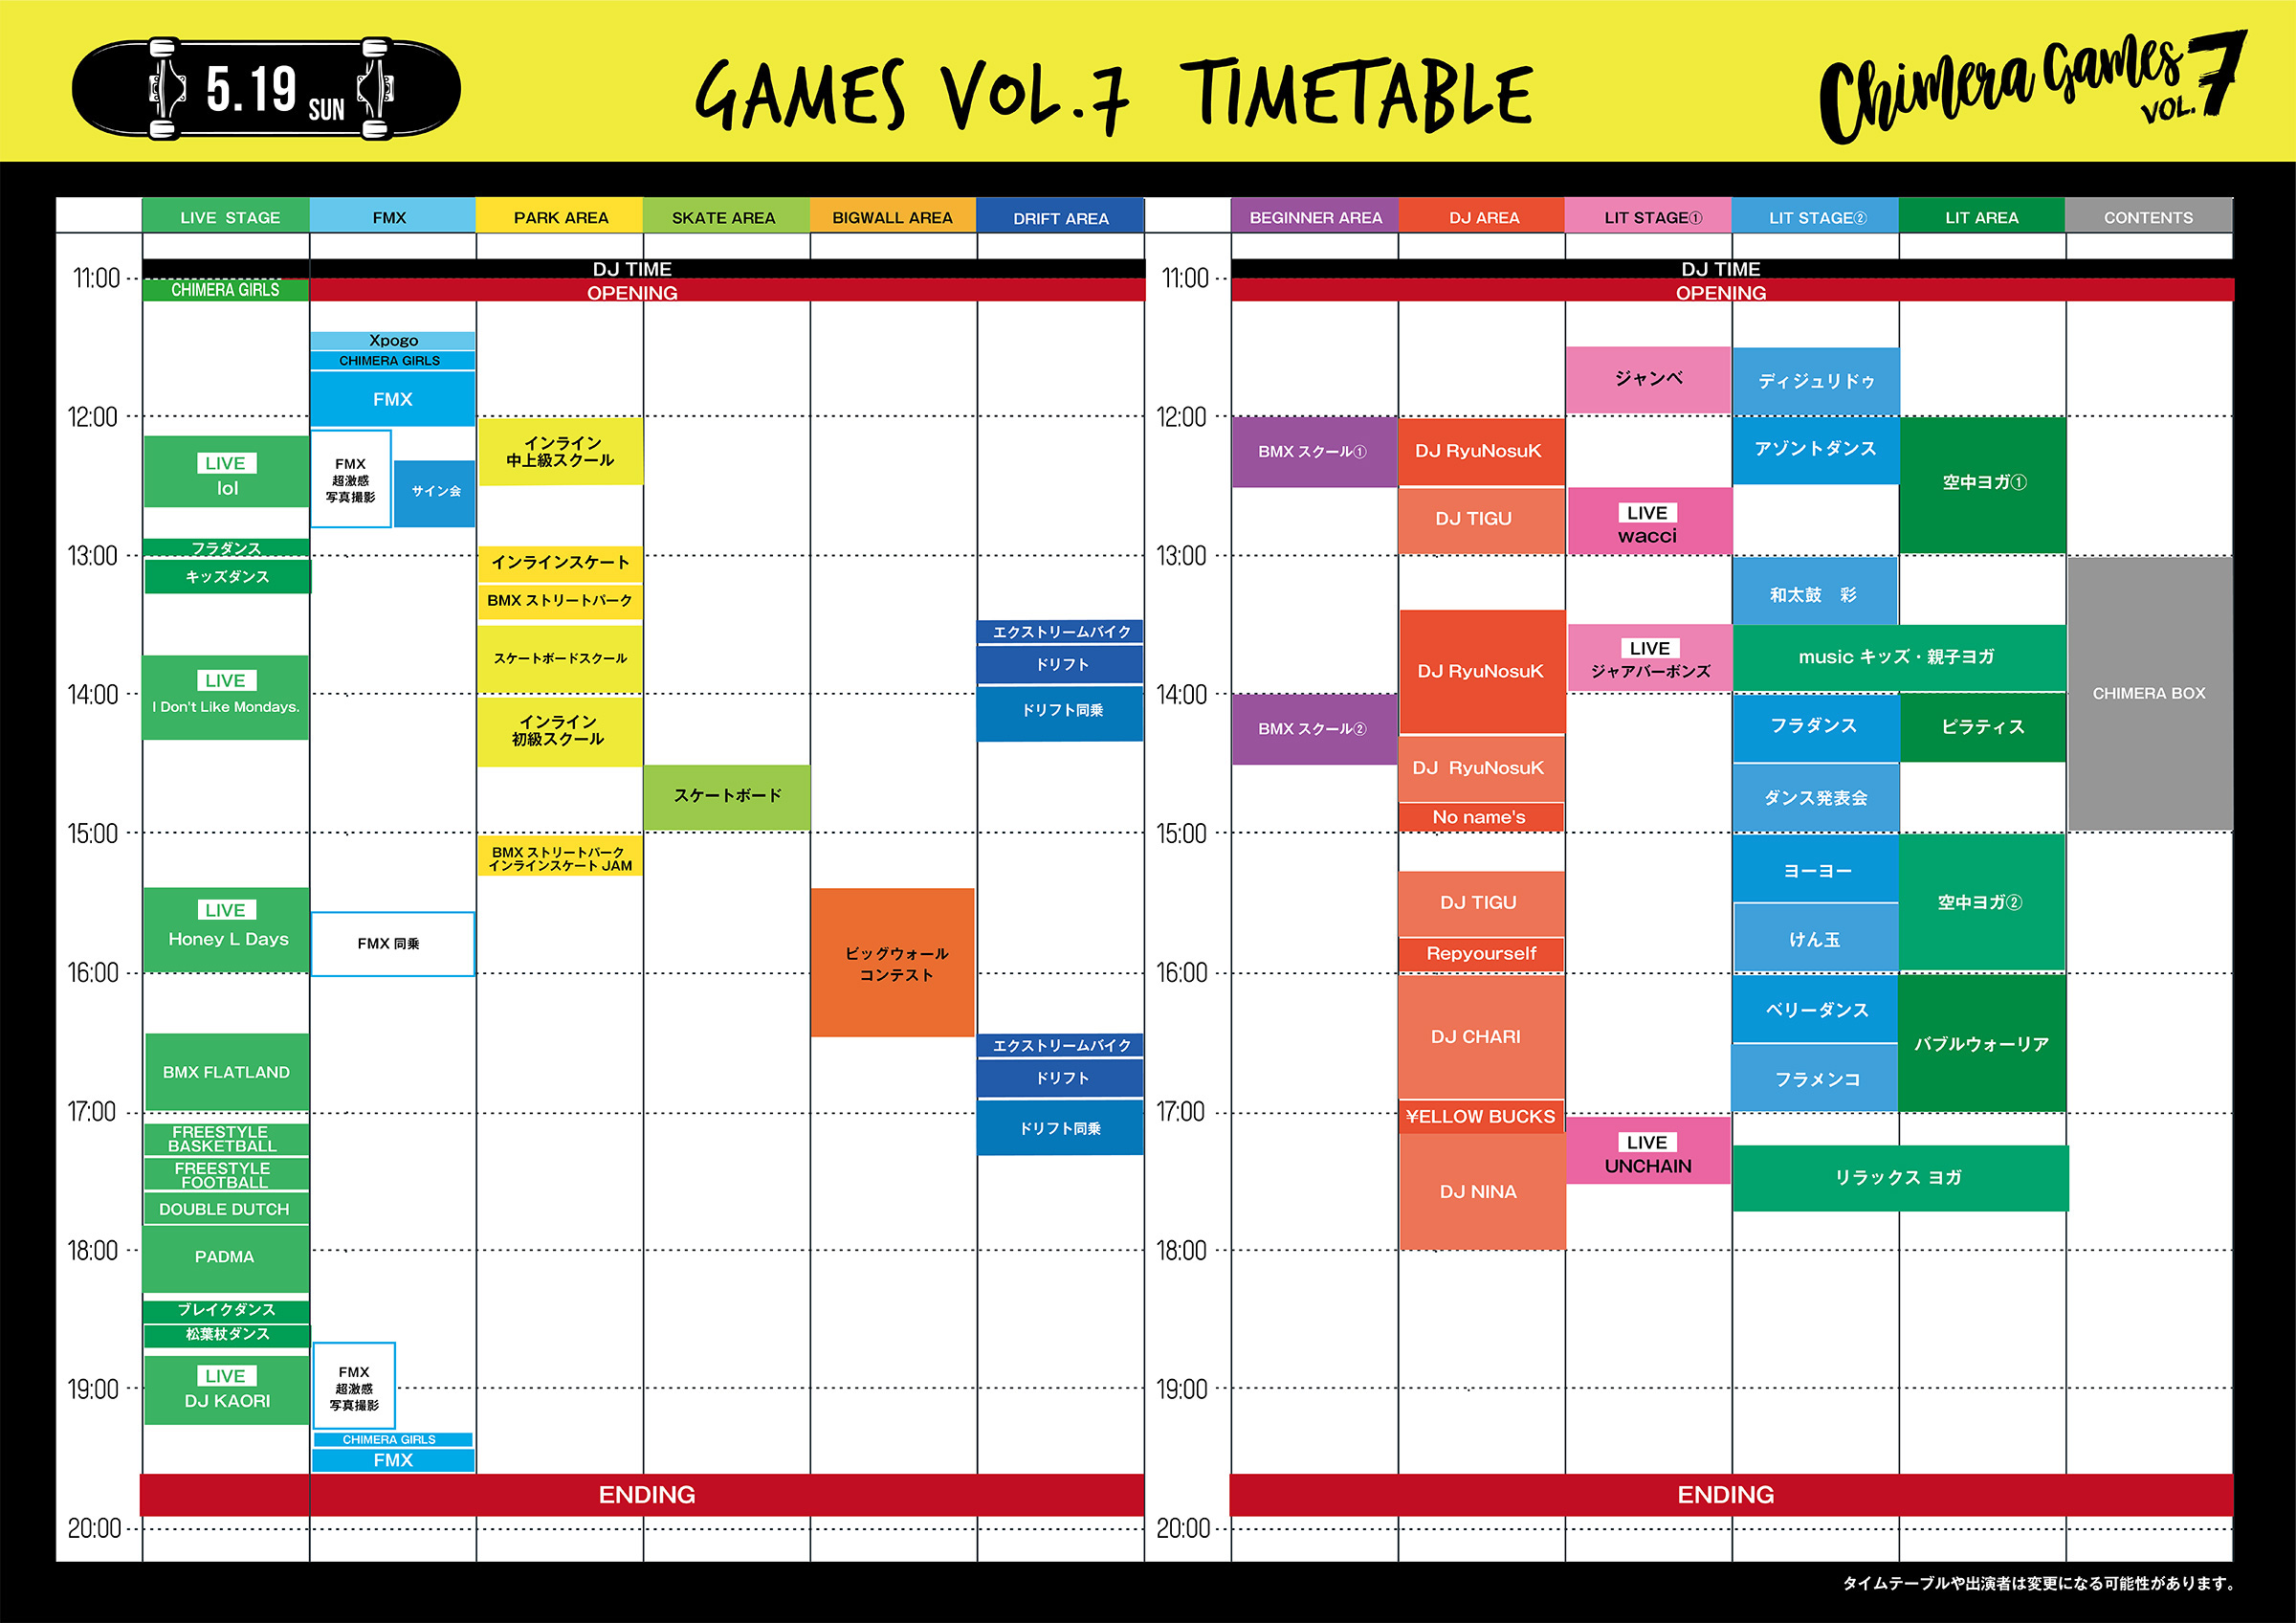 CHIMERA GAMES VOL.7:TIMETABLE:2019年5月19日(日)